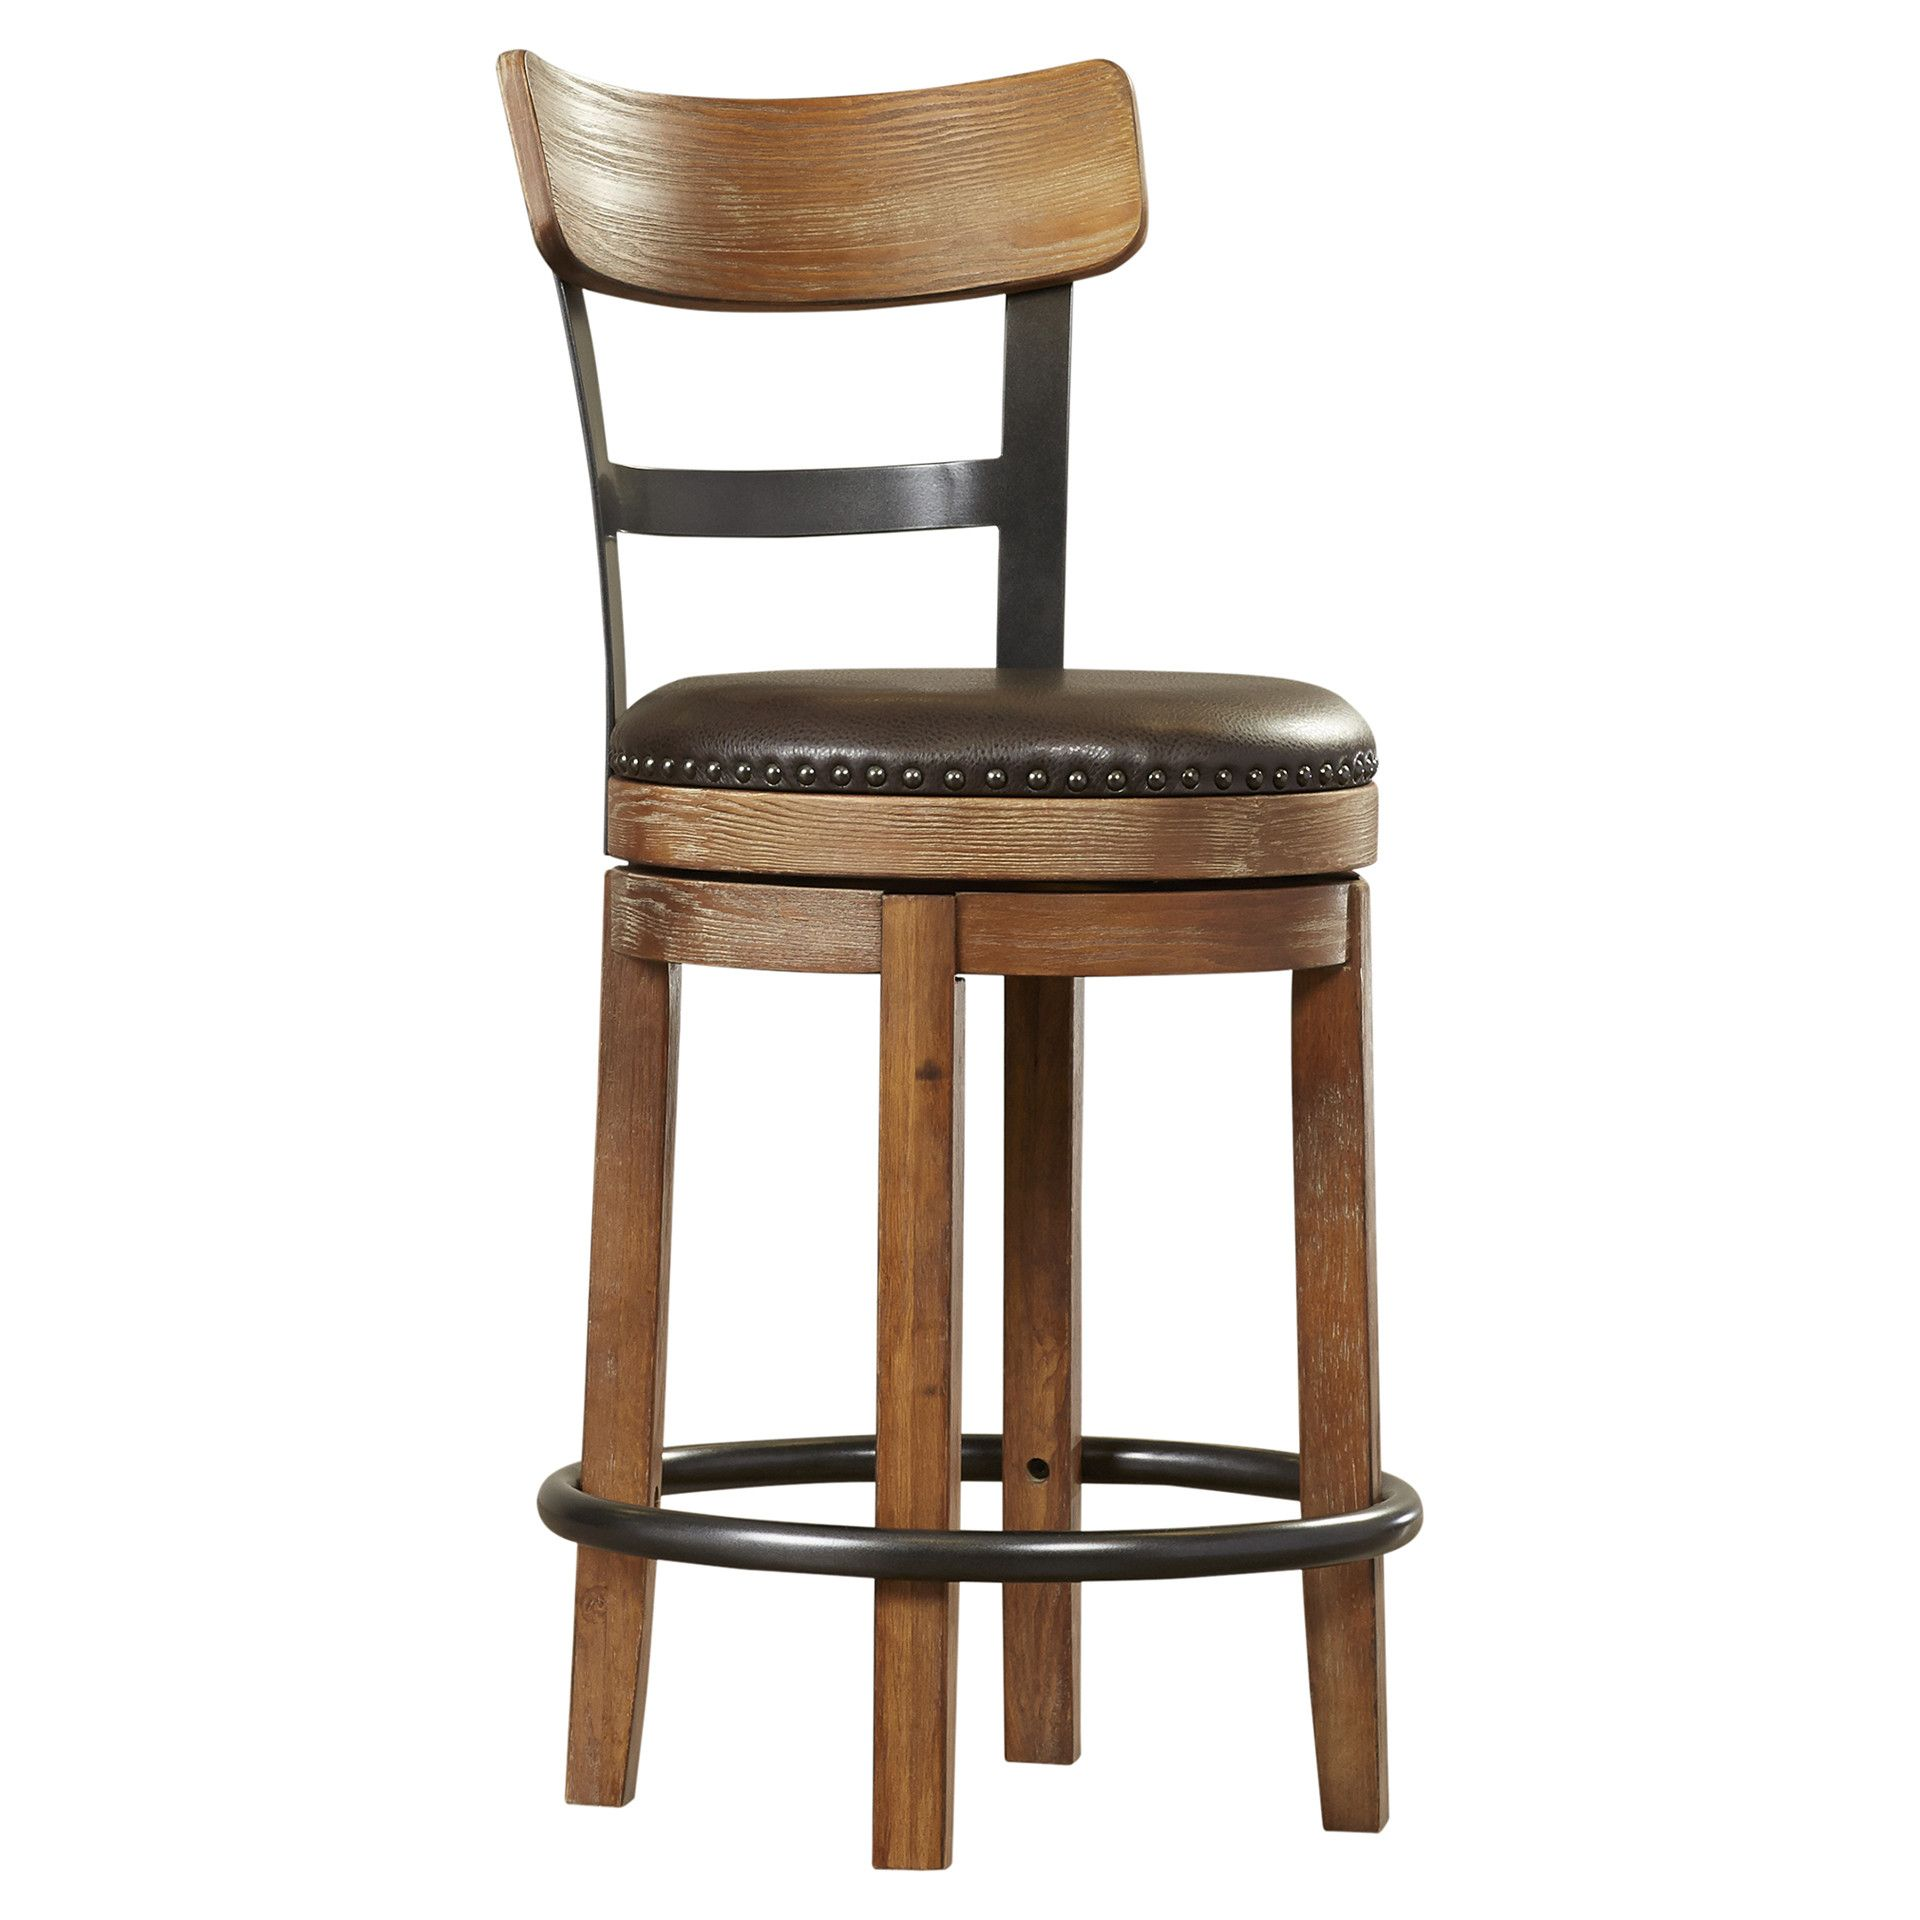 Stupendous Goethe Bar Counter Swivel Stool Barstools Swivel Bar Squirreltailoven Fun Painted Chair Ideas Images Squirreltailovenorg